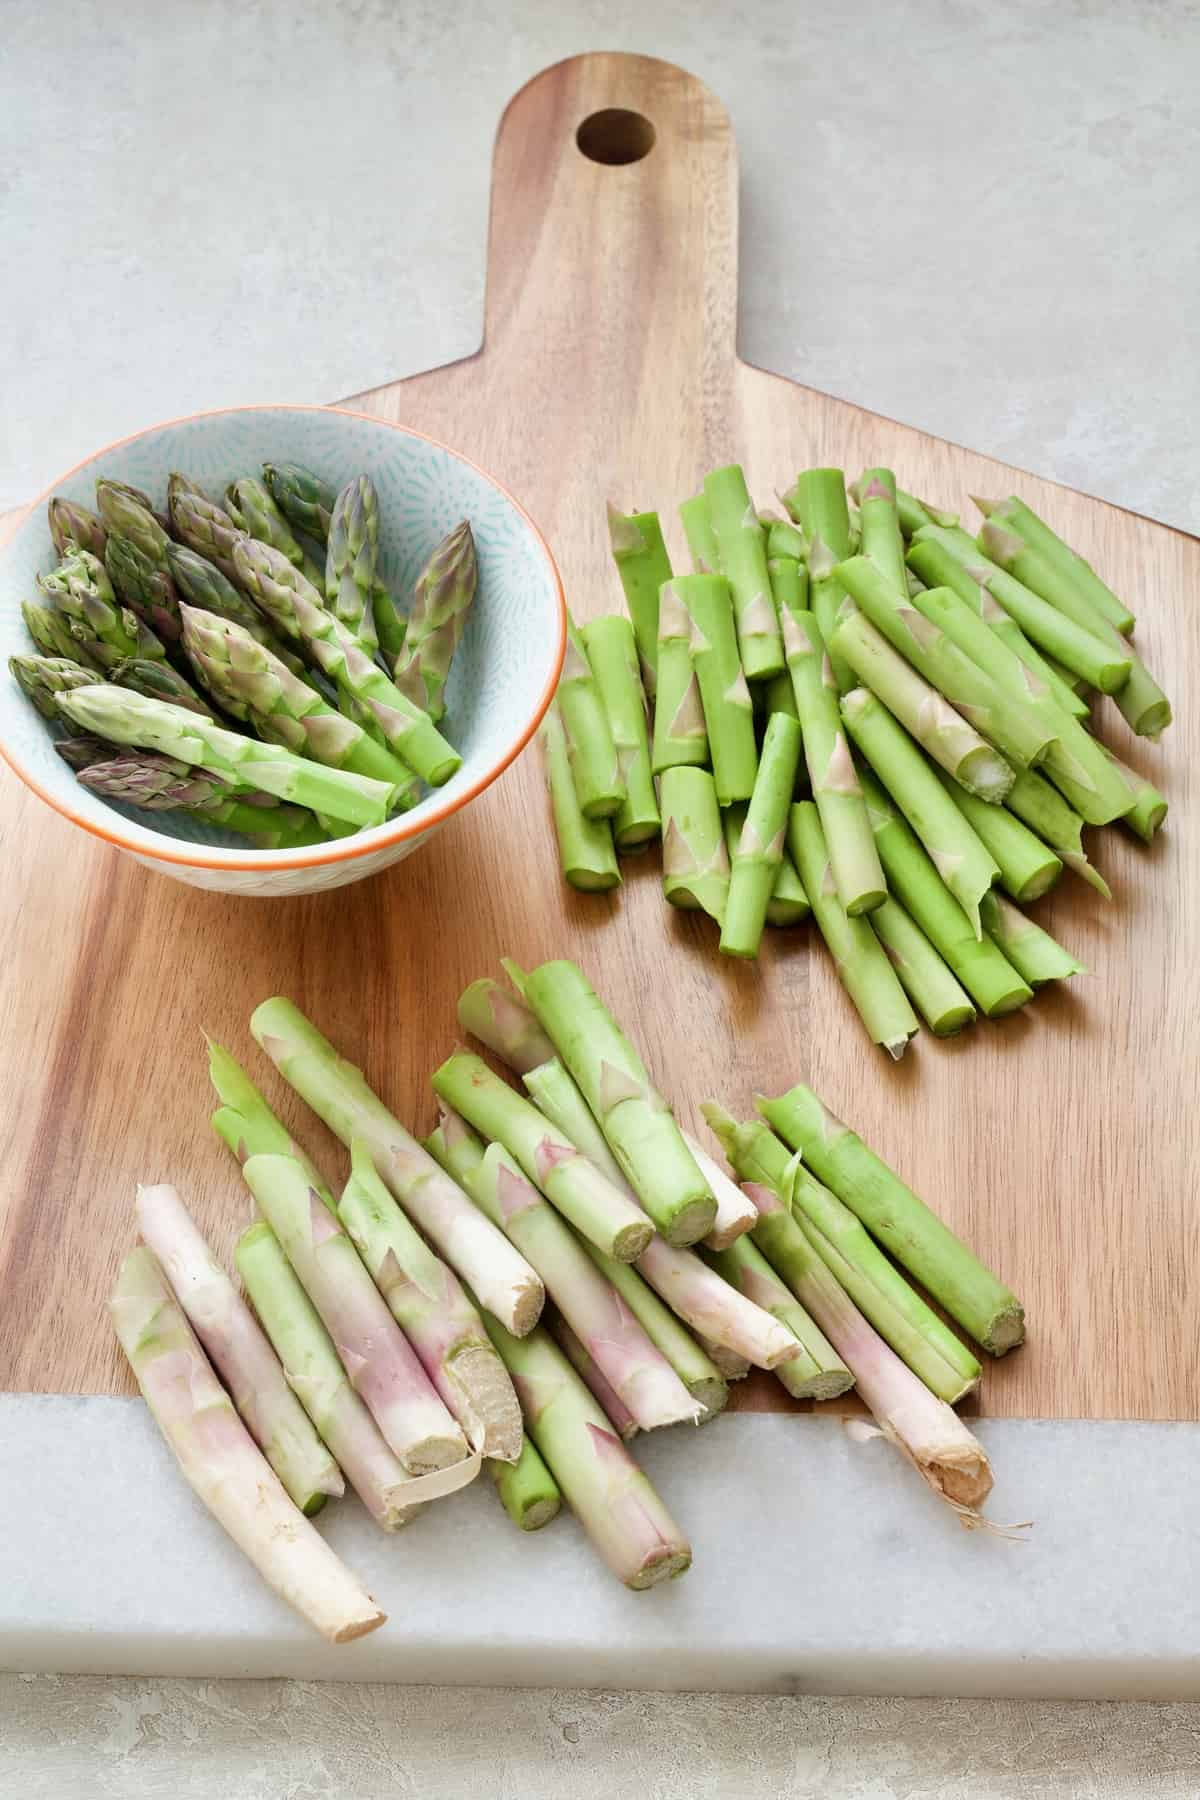 Prepared asparagus on wooden board.